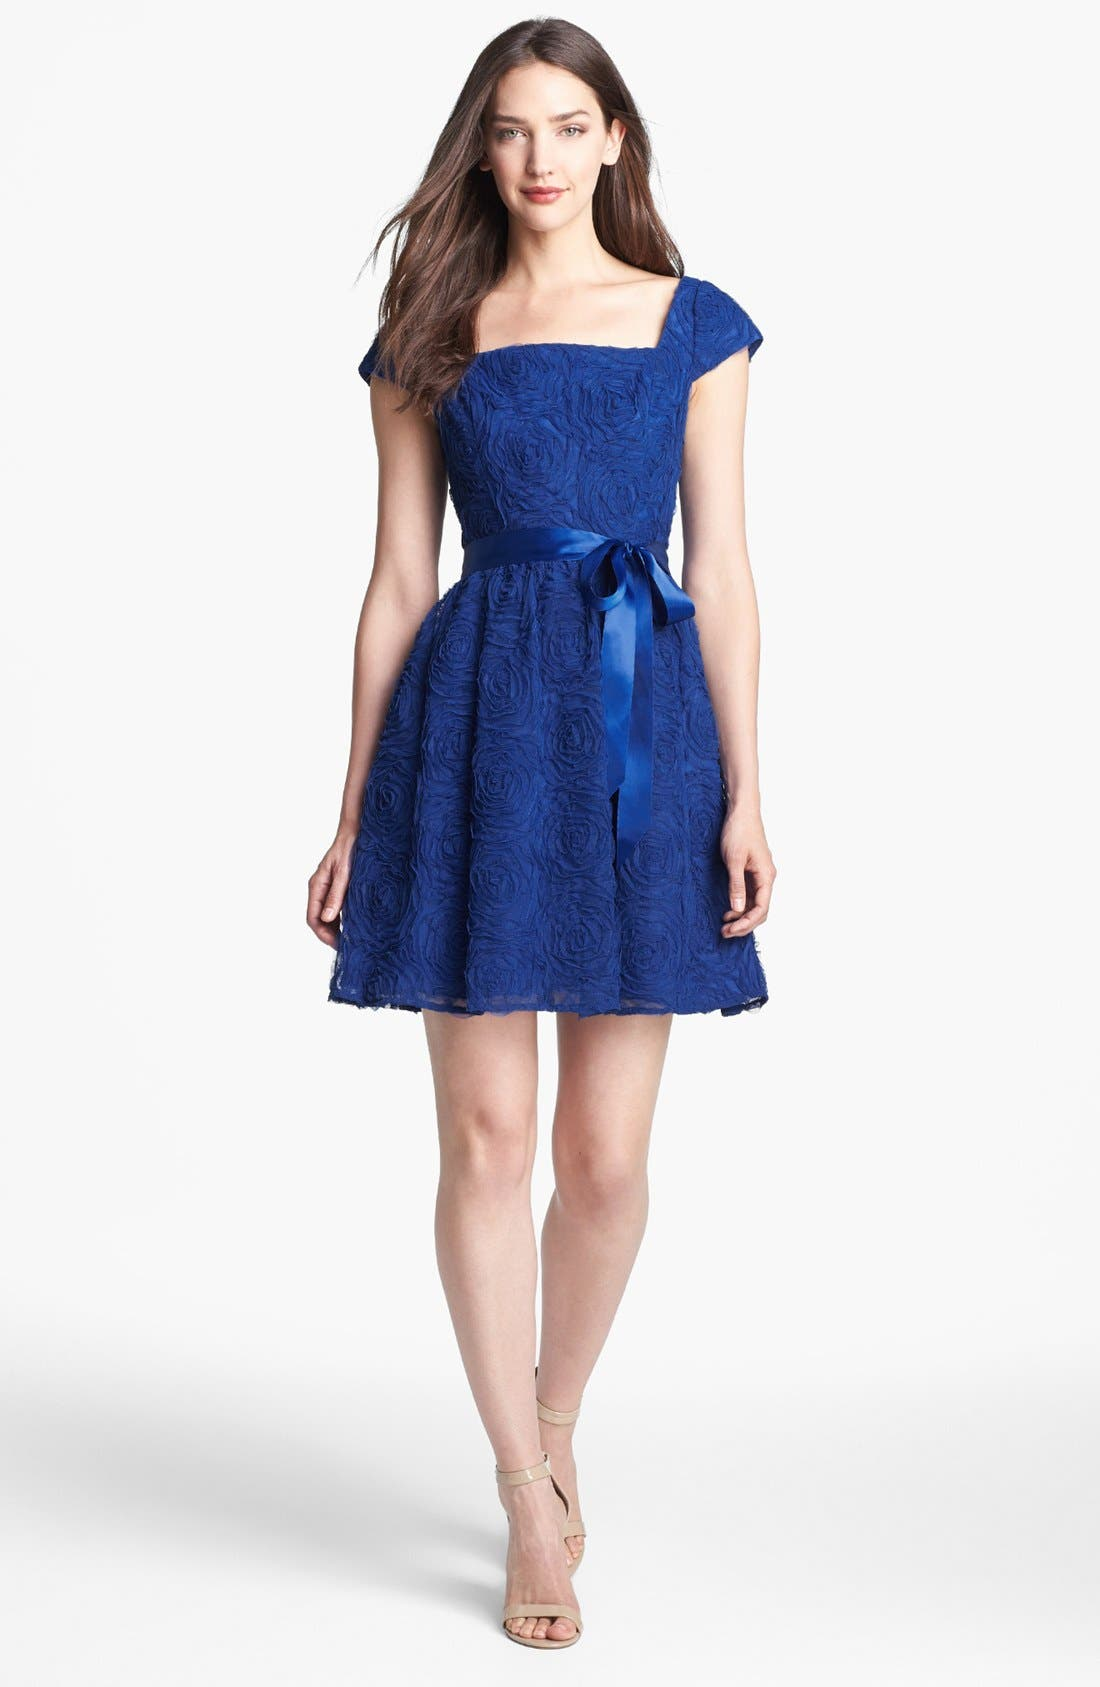 Alternate Image 1 Selected - Adrianna Papell Rosette Textured Fit & Flare Dress